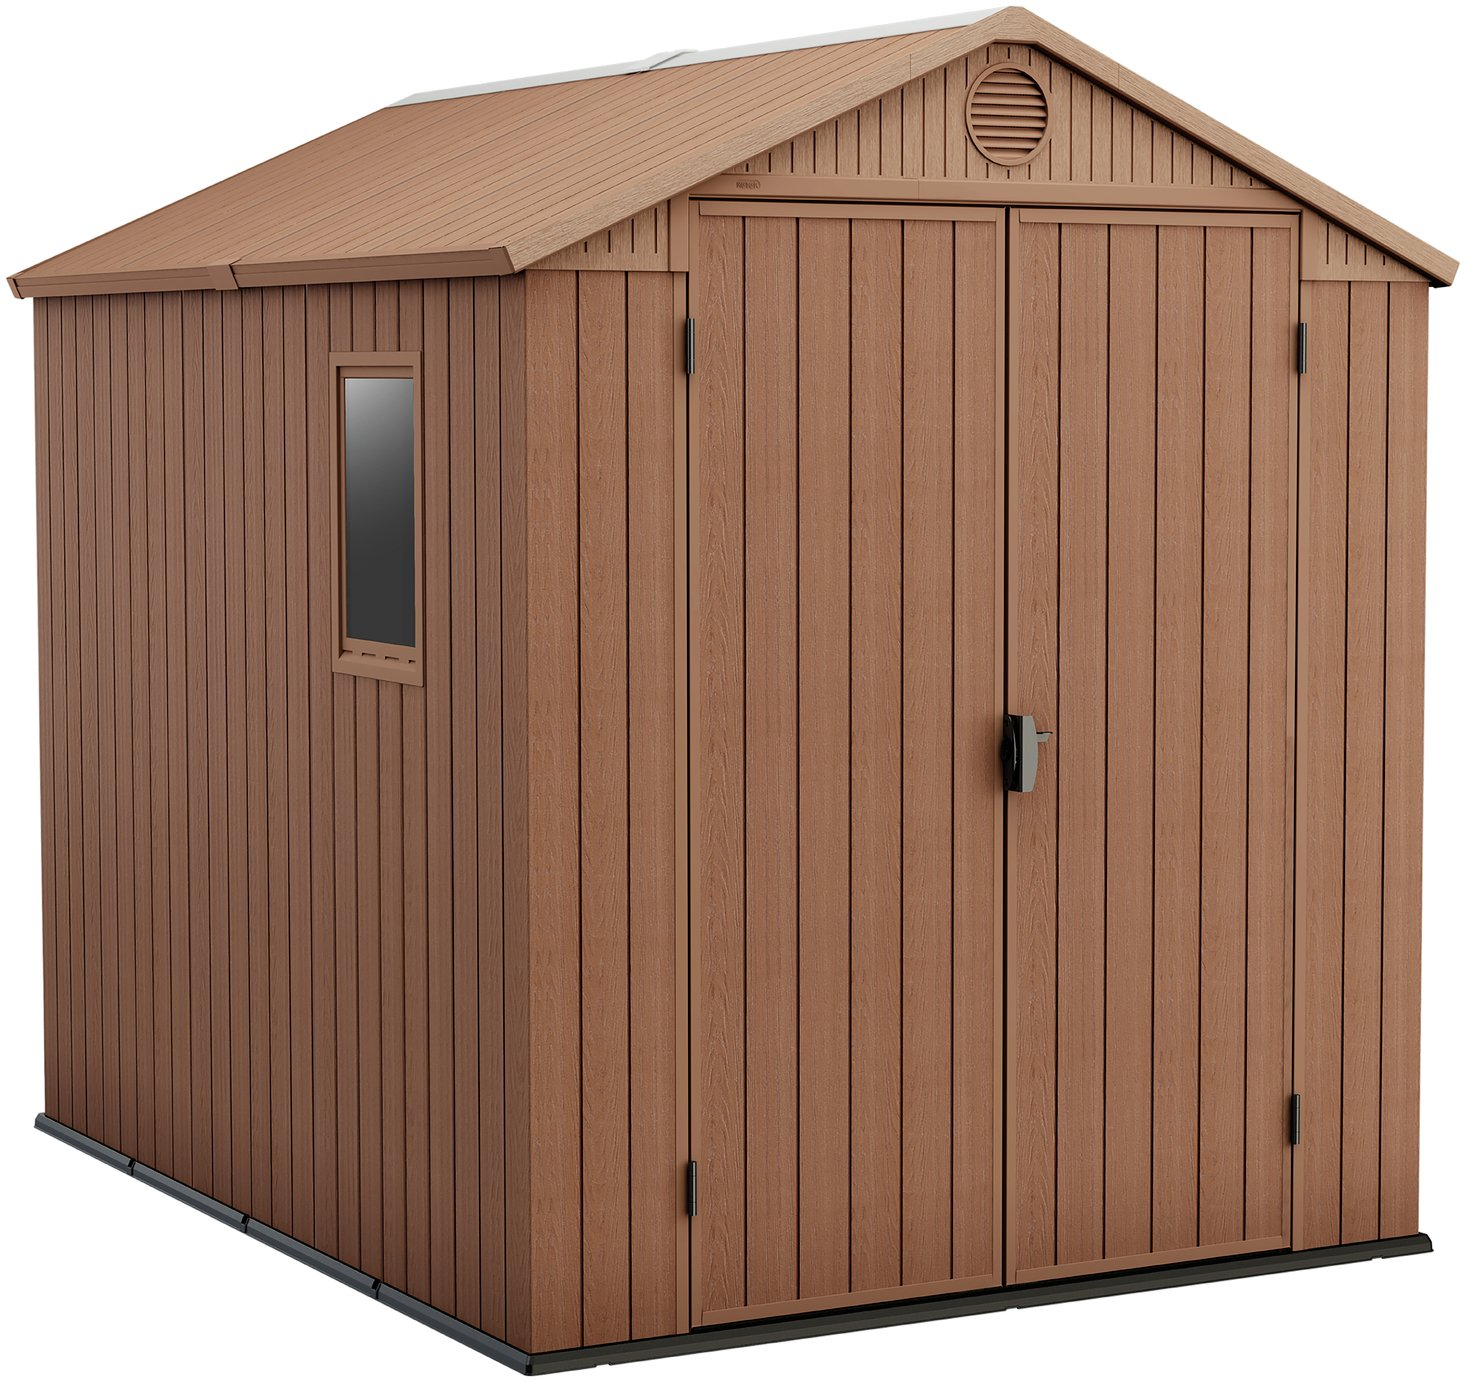 Keter Plastic Darwin Shed - 6 x 8ft